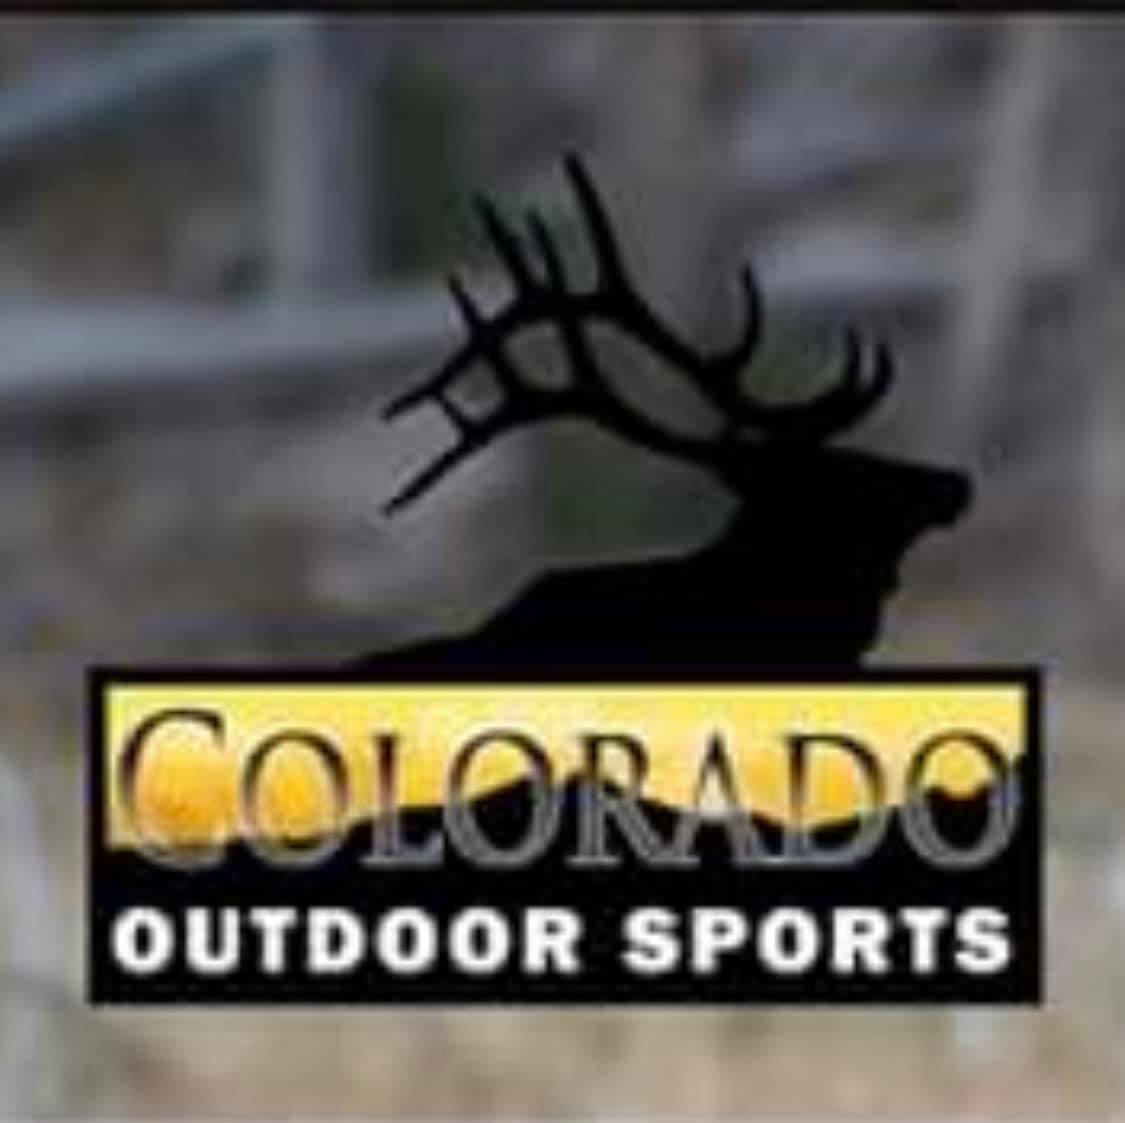 January 9, 2021: Davis Tents – Colorado Parks & Wildlife – ATN Corp – Colorado Outdoor Sports – Lone Star Hunts